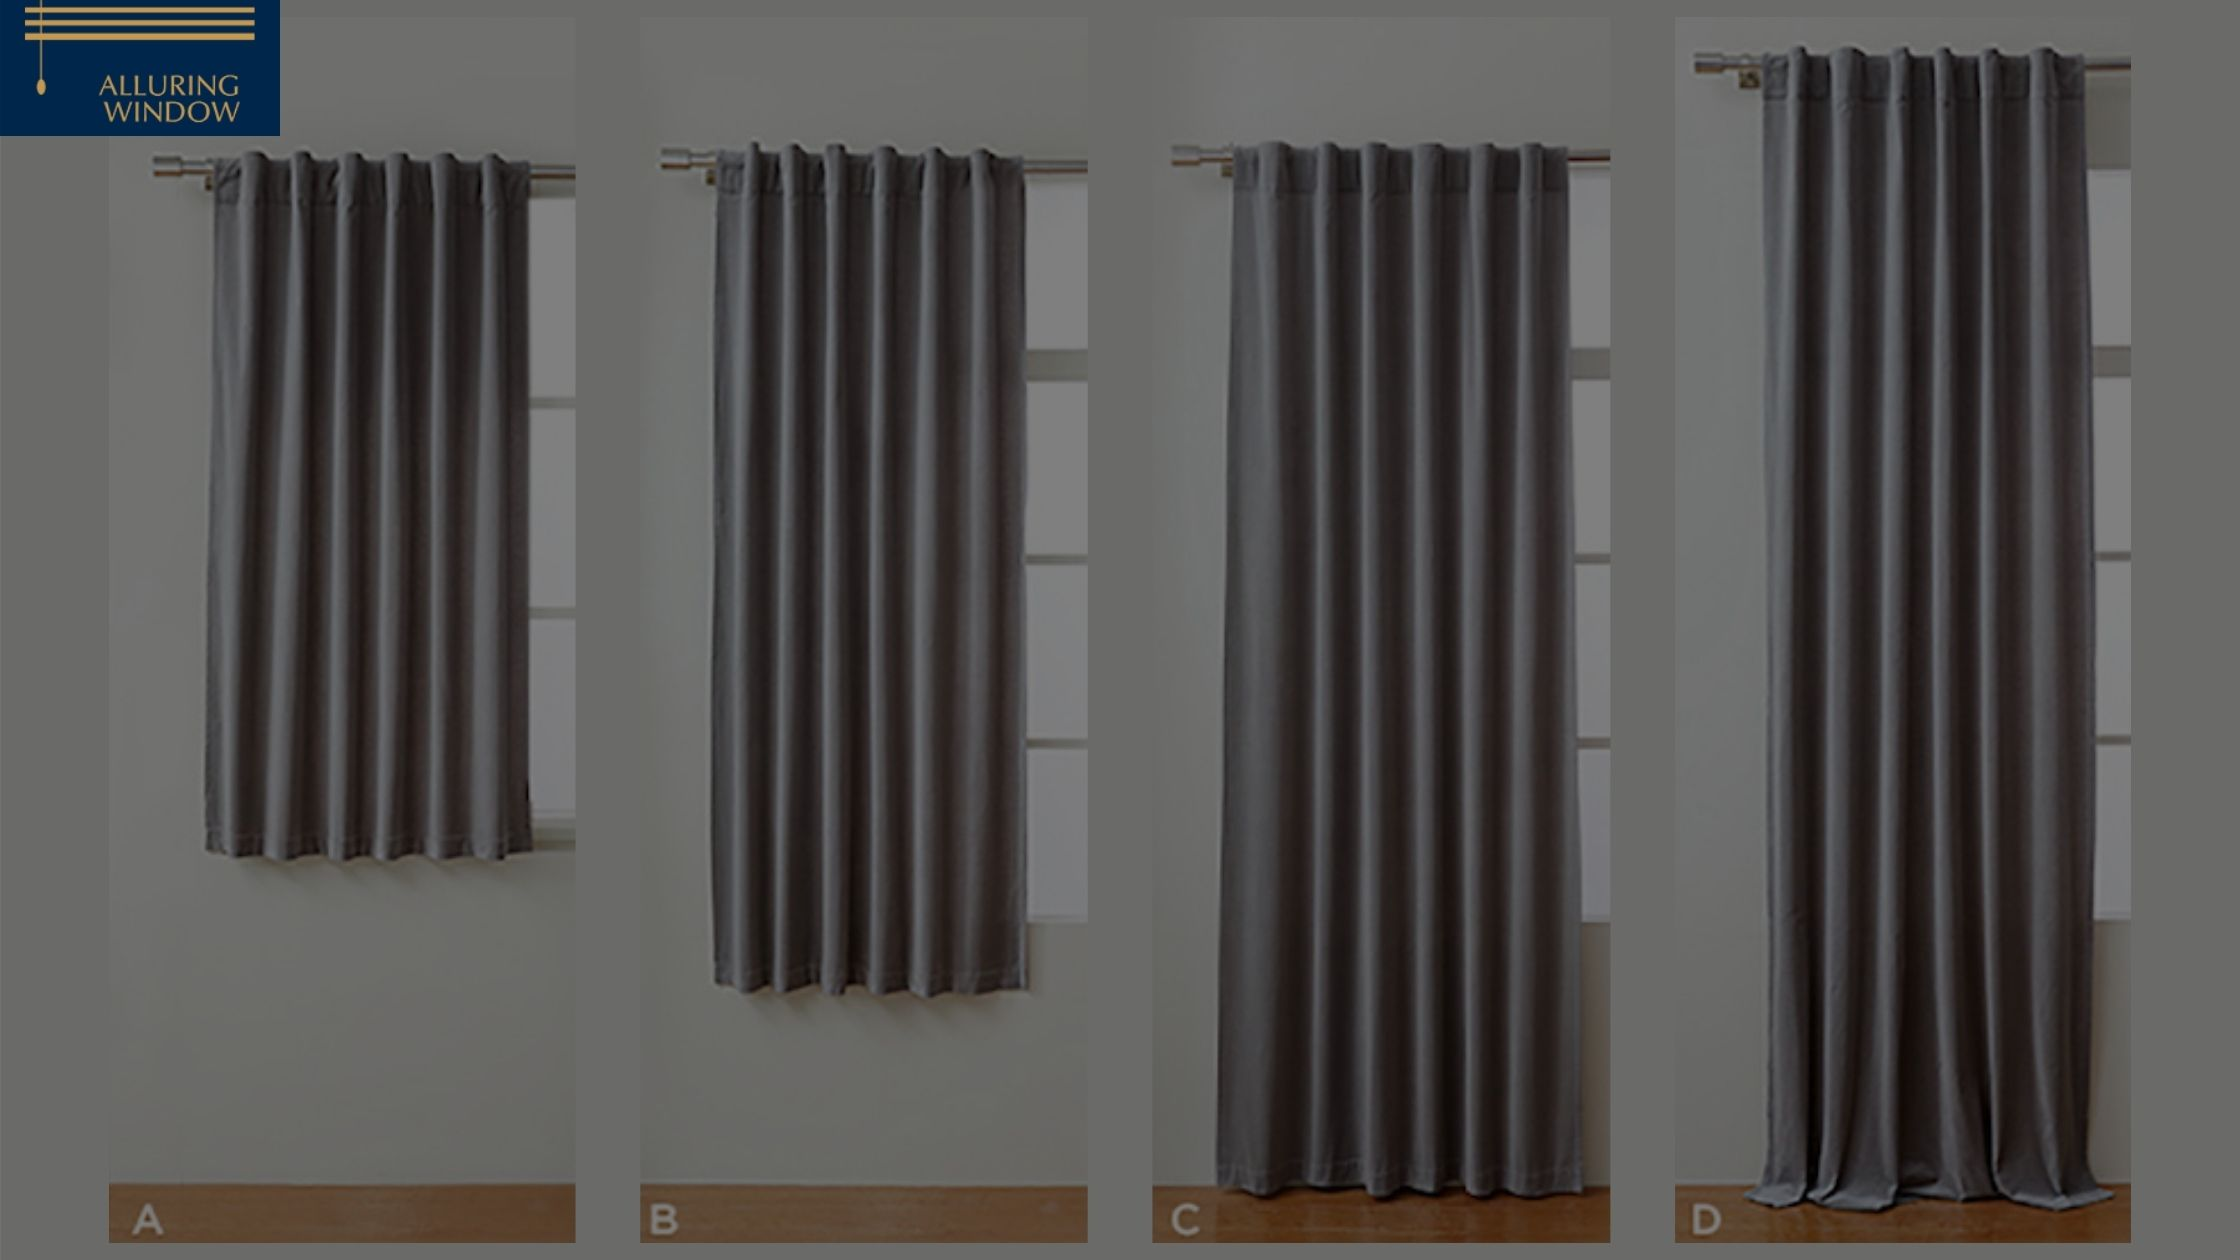 Curtain Size Guide: All You Need to Know About Curtain Lengths